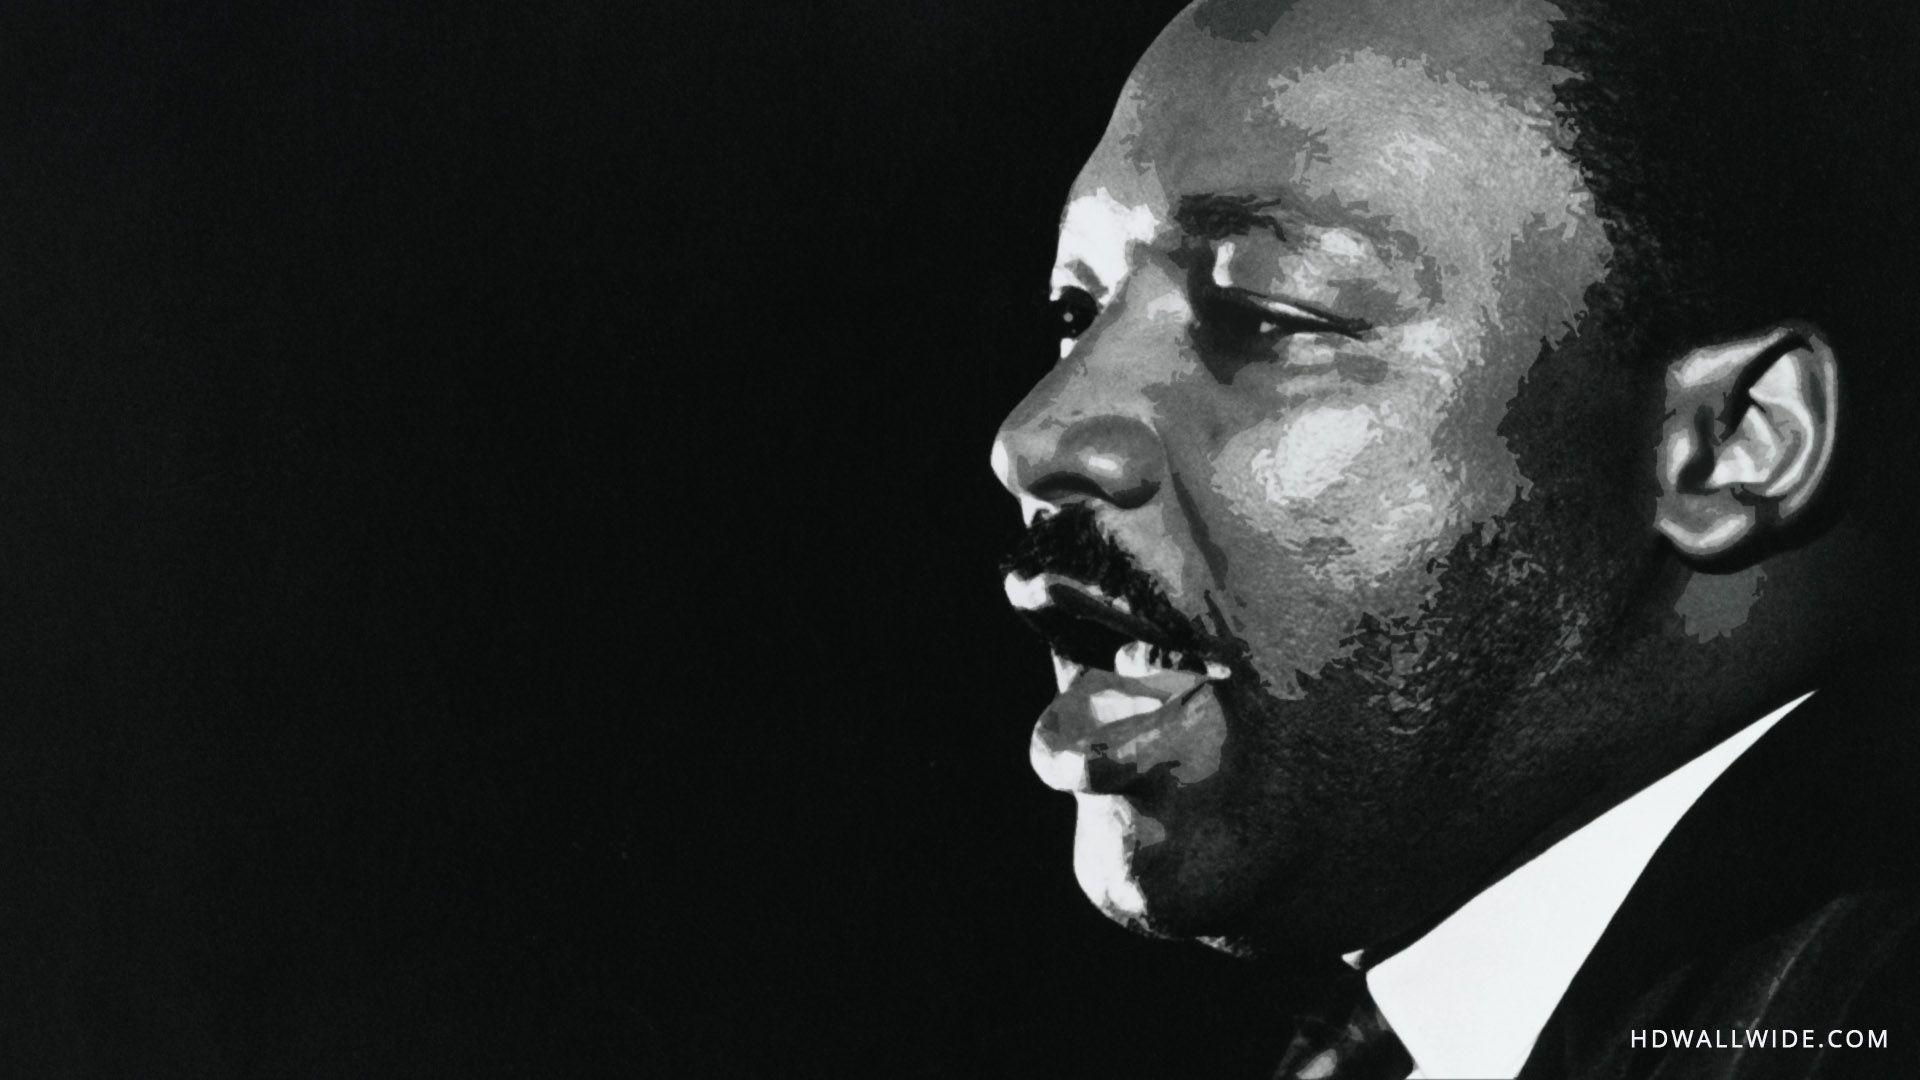 96] Martin Luther King Jr Wallpapers on WallpaperSafari 1920x1080